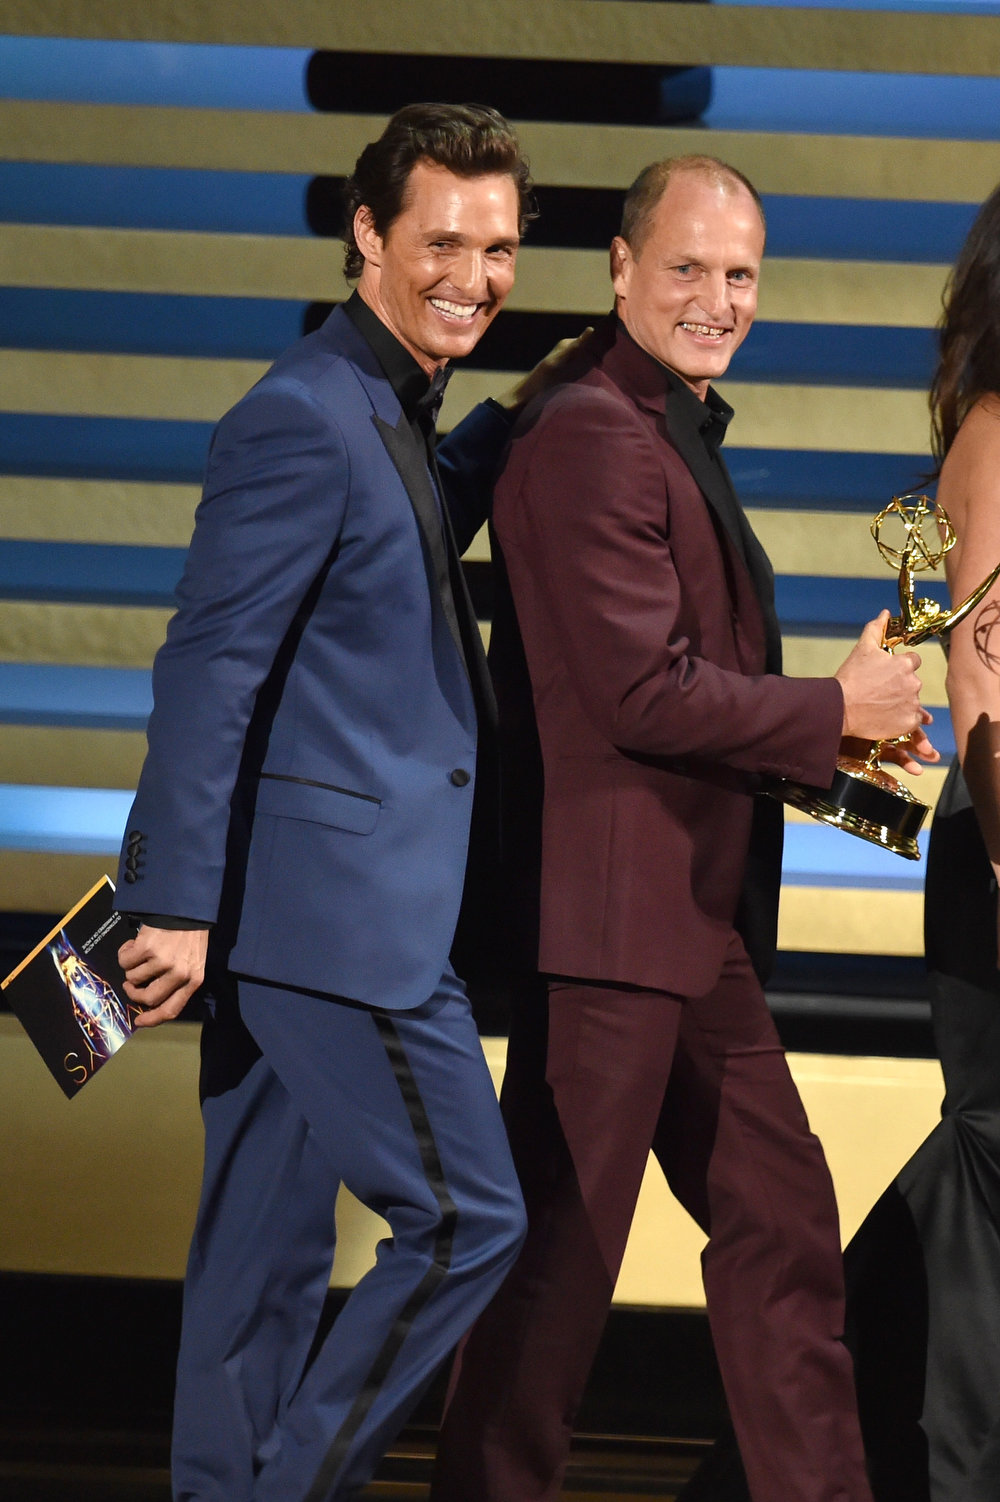 . Actors Matthew McConaughey (L) and Woody Harrelson walk onstage at the 66th Annual Primetime Emmy Awards held at Nokia Theatre L.A. Live on August 25, 2014 in Los Angeles, California.  (Photo by Kevin Winter/Getty Images)